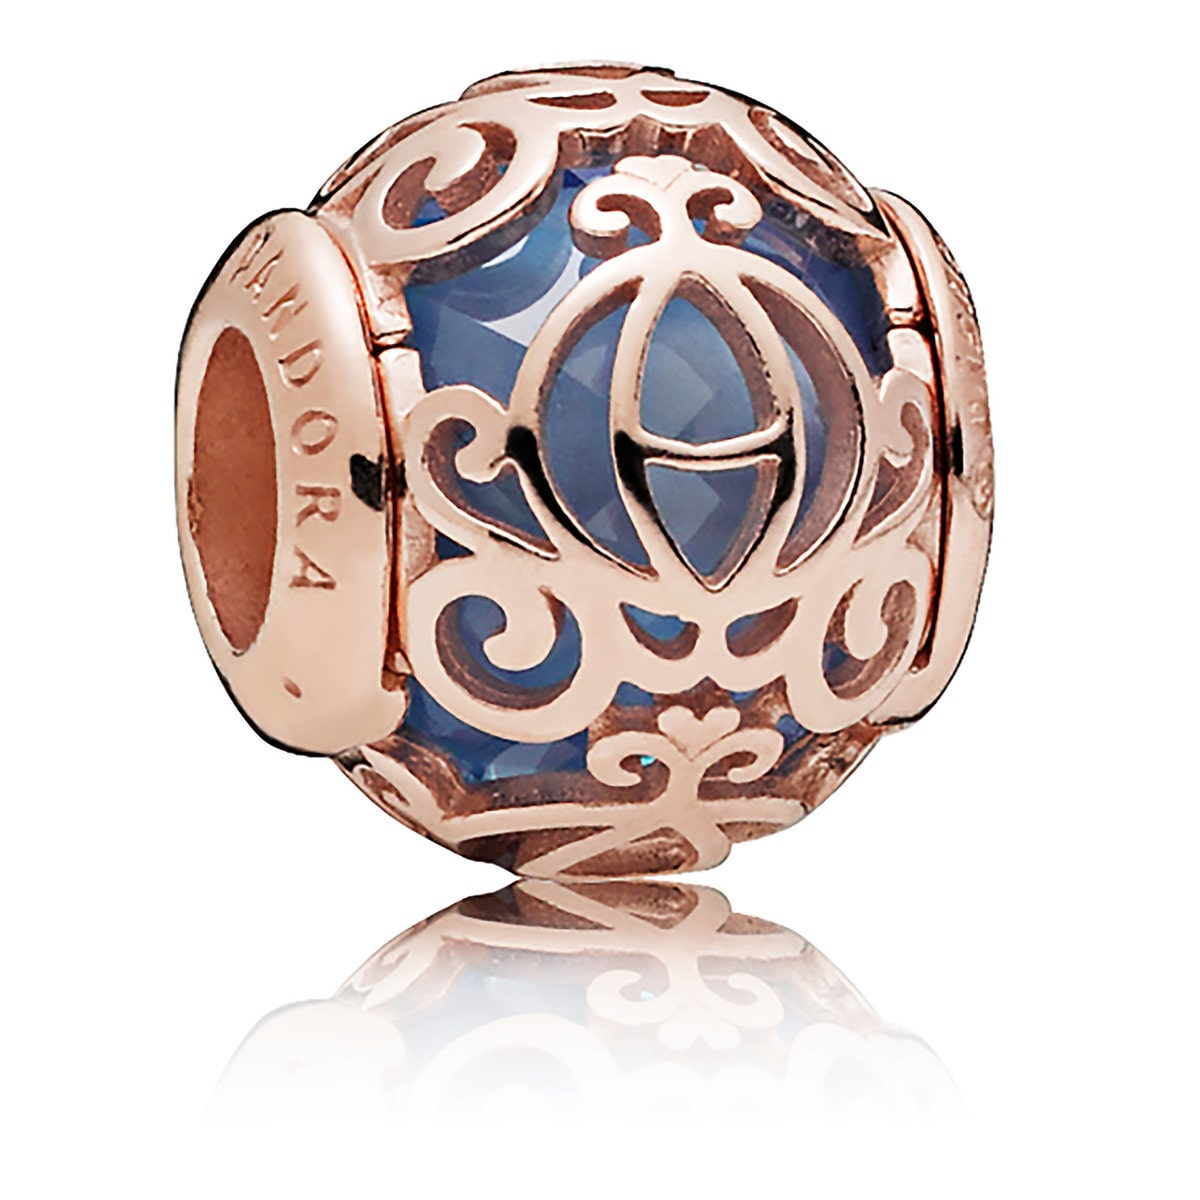 5e0549cad Product Image of Cinderella Coach Charm by Pandora Jewelry # 1